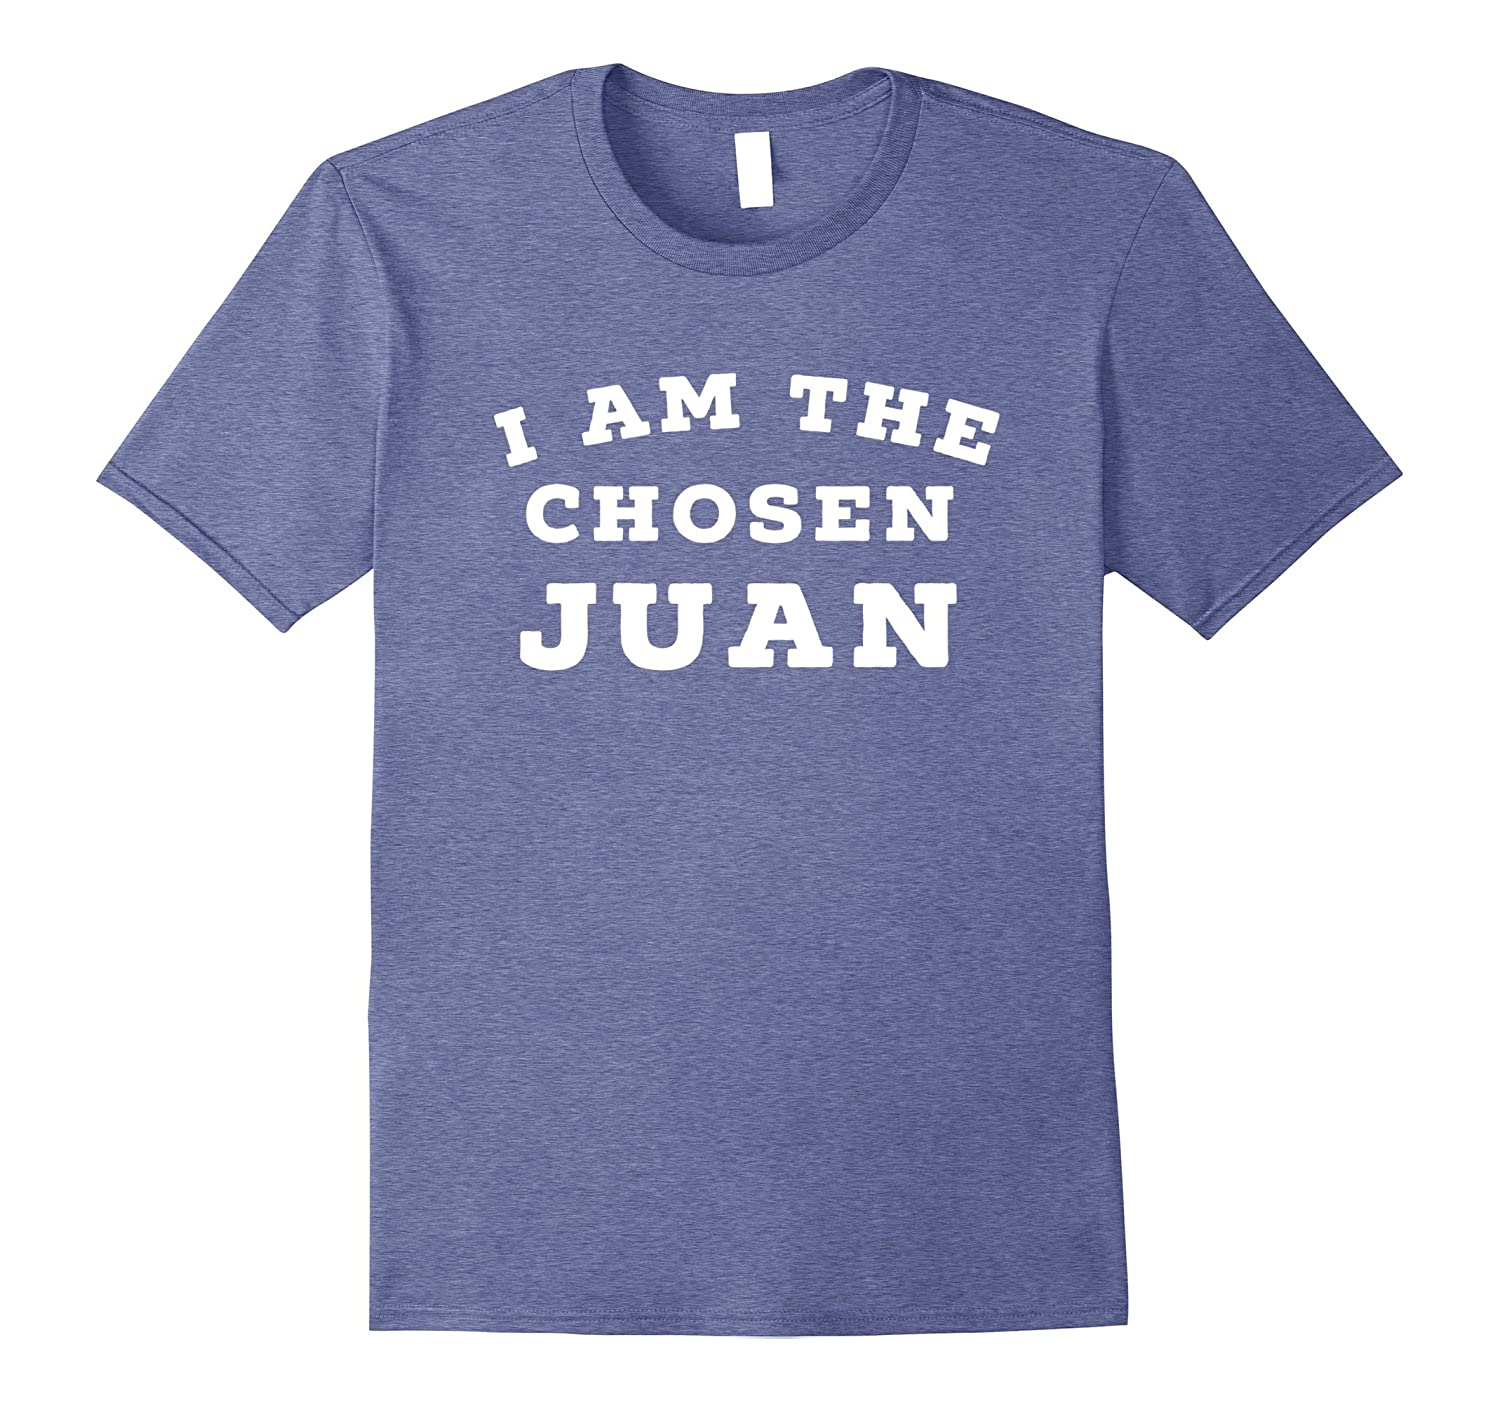 Funny Mexican T-Shirt for Men Women and Kids-CD